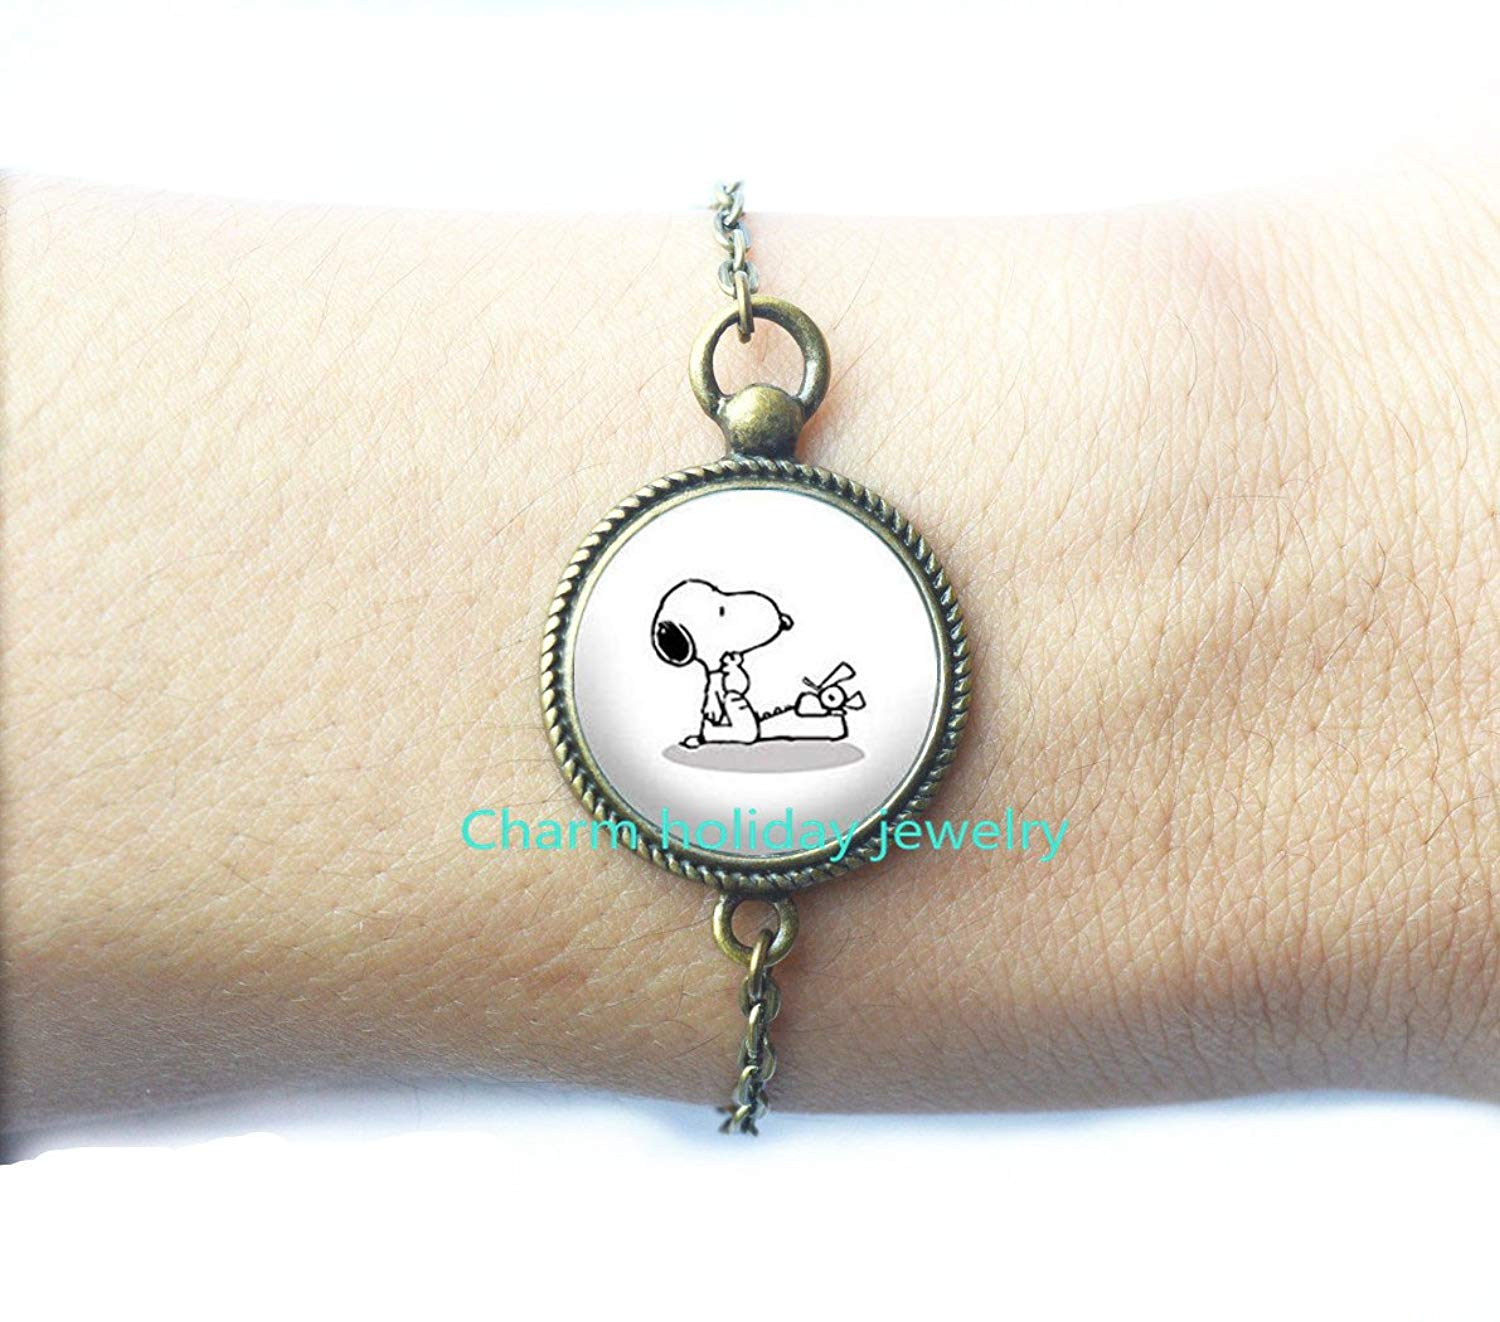 Typing Dog -Dog Bracelet -Dog - Typewriter - Writing Bracelet - Jewelry for Writers,Jewelry for Writers Writing Jewelry,Charm Bracelet.D0114